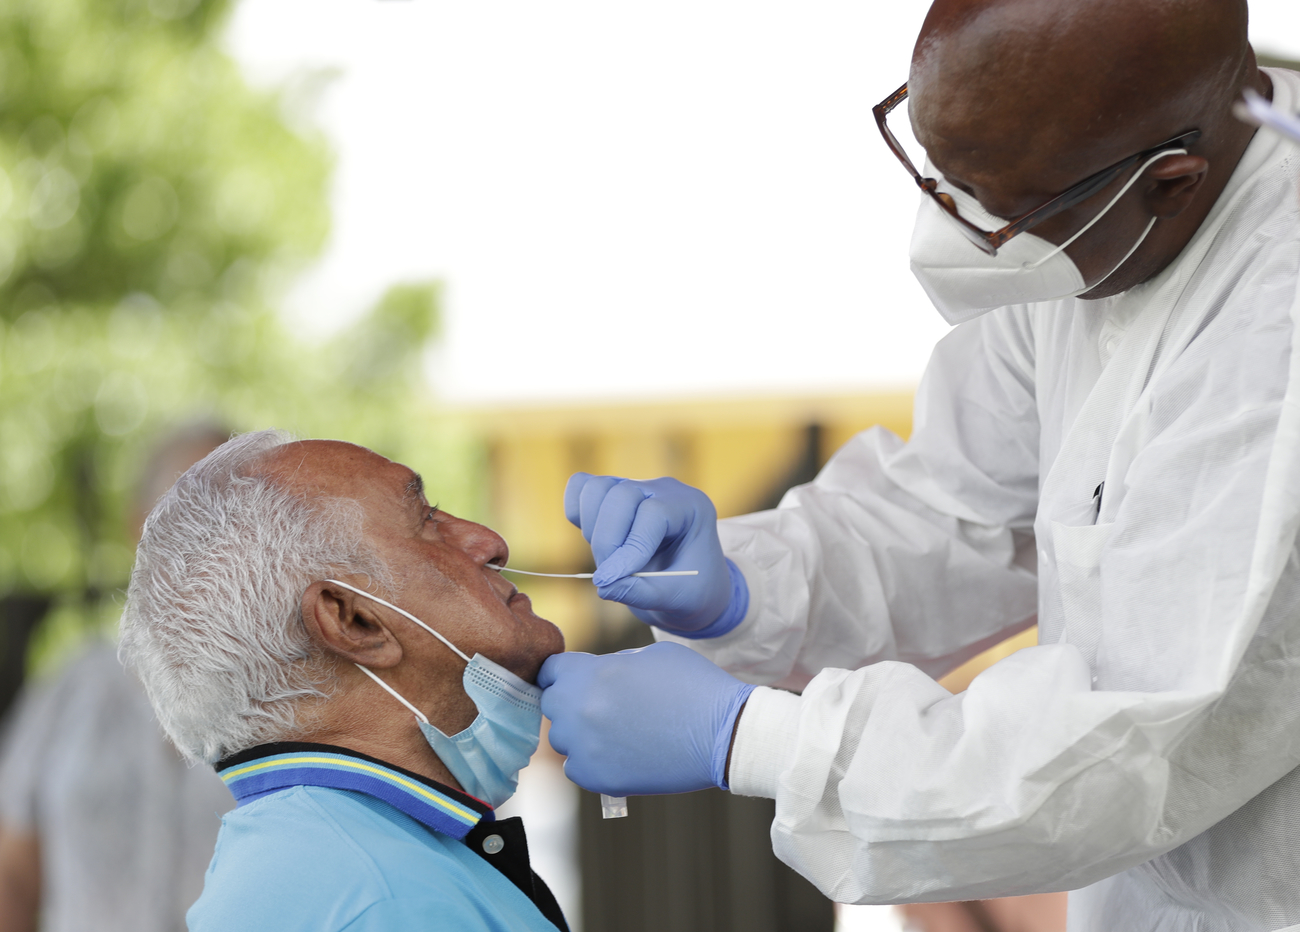 There are now 2 coronavirus safety guidelines from the CDC that you should ignore